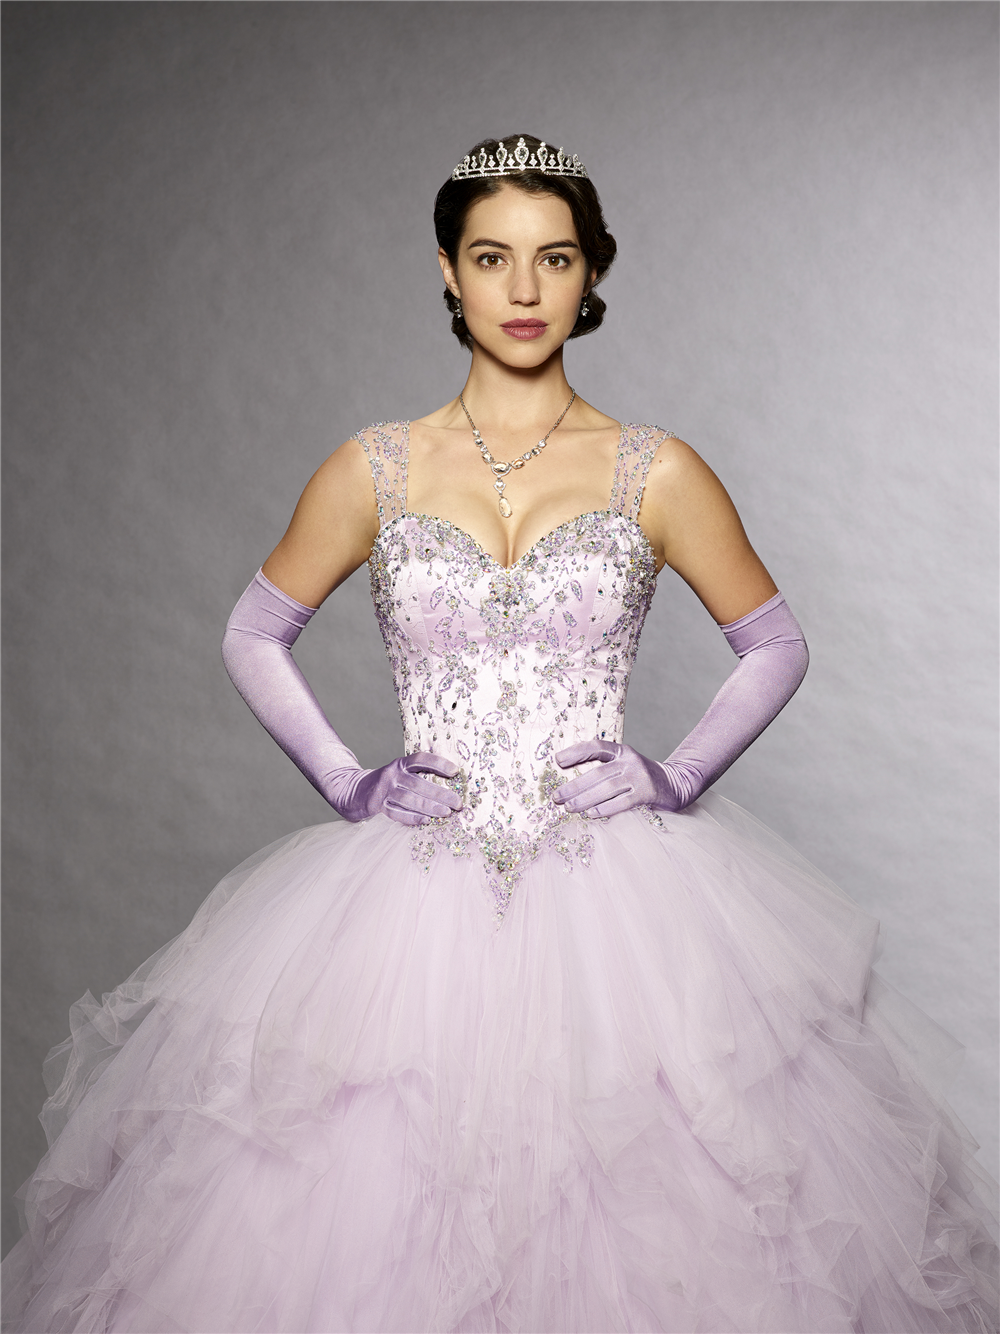 Drizella Tremaine (Once Upon a Time) | Villains Wiki | FANDOM ...